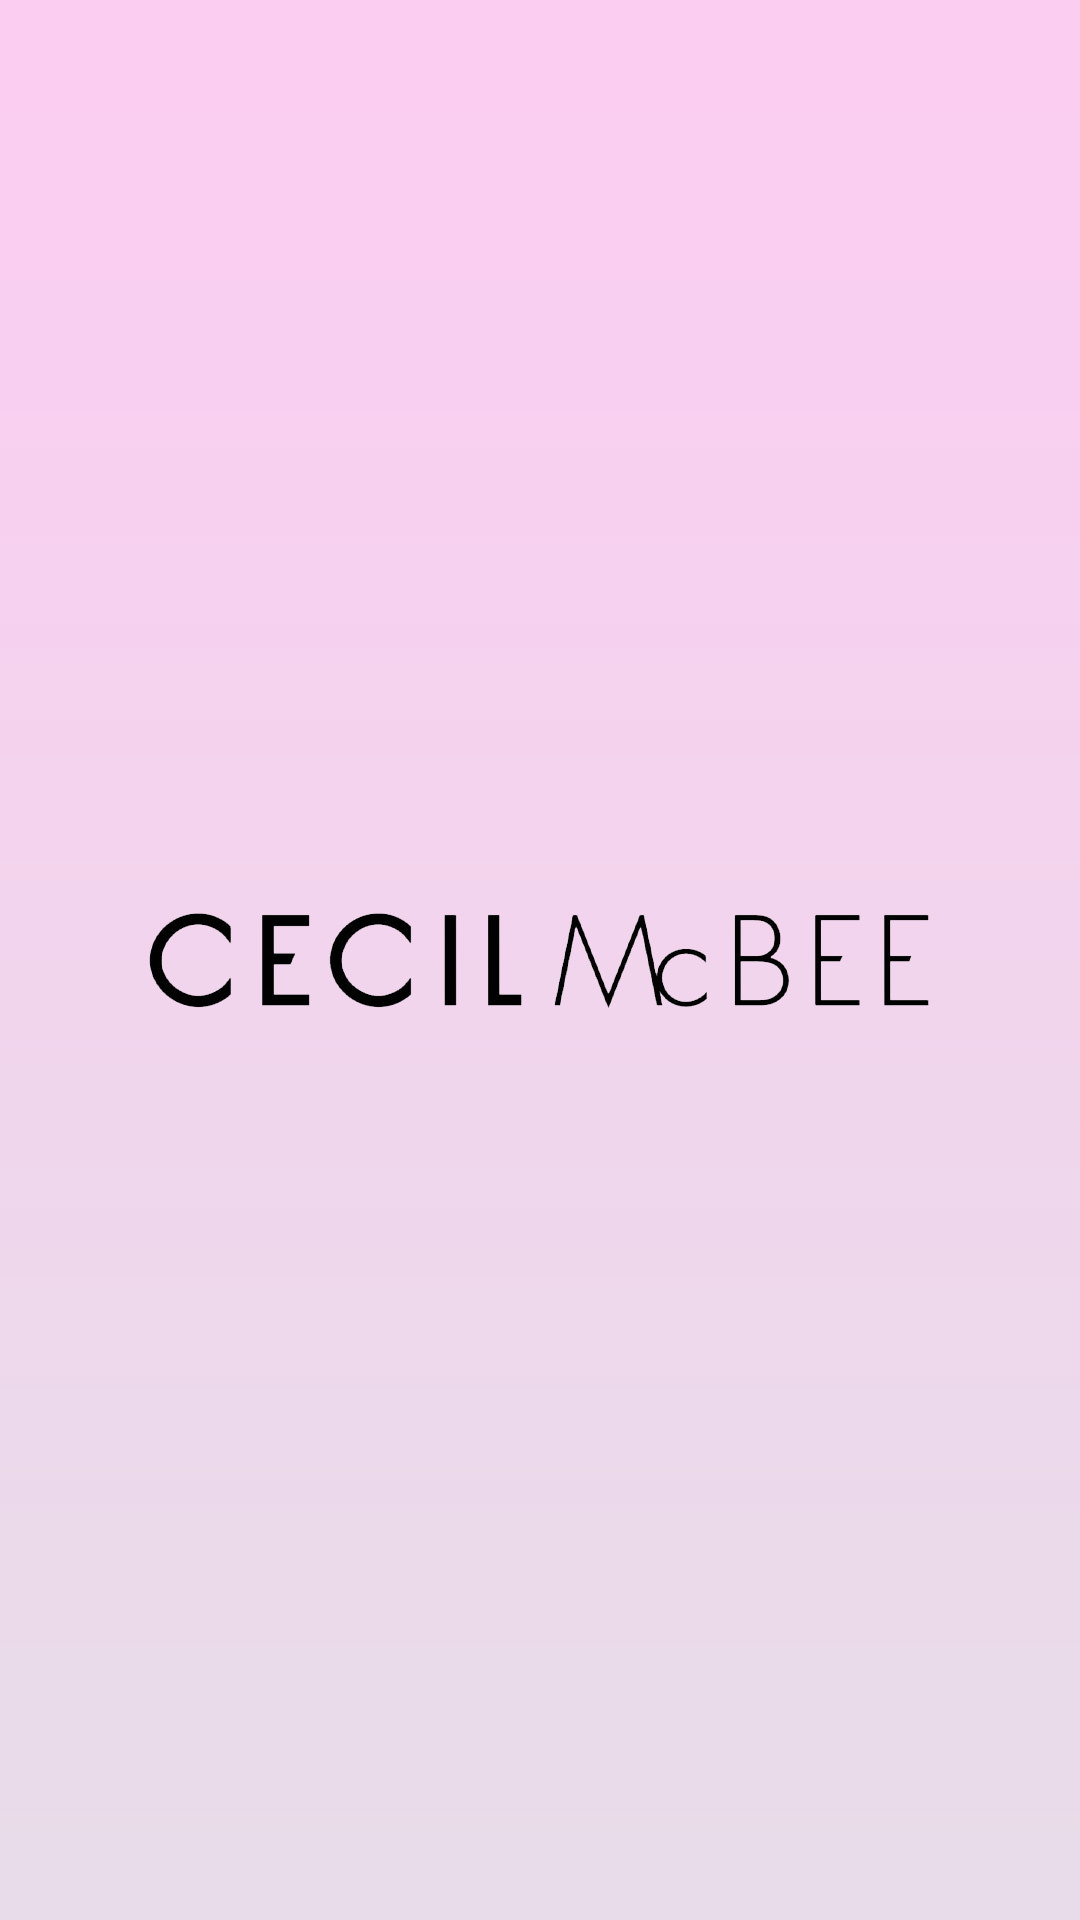 cecil00005 - セシルマクビー[CECIL McBEE]の高画質スマホ壁紙23枚 [iPhone&Androidに対応]